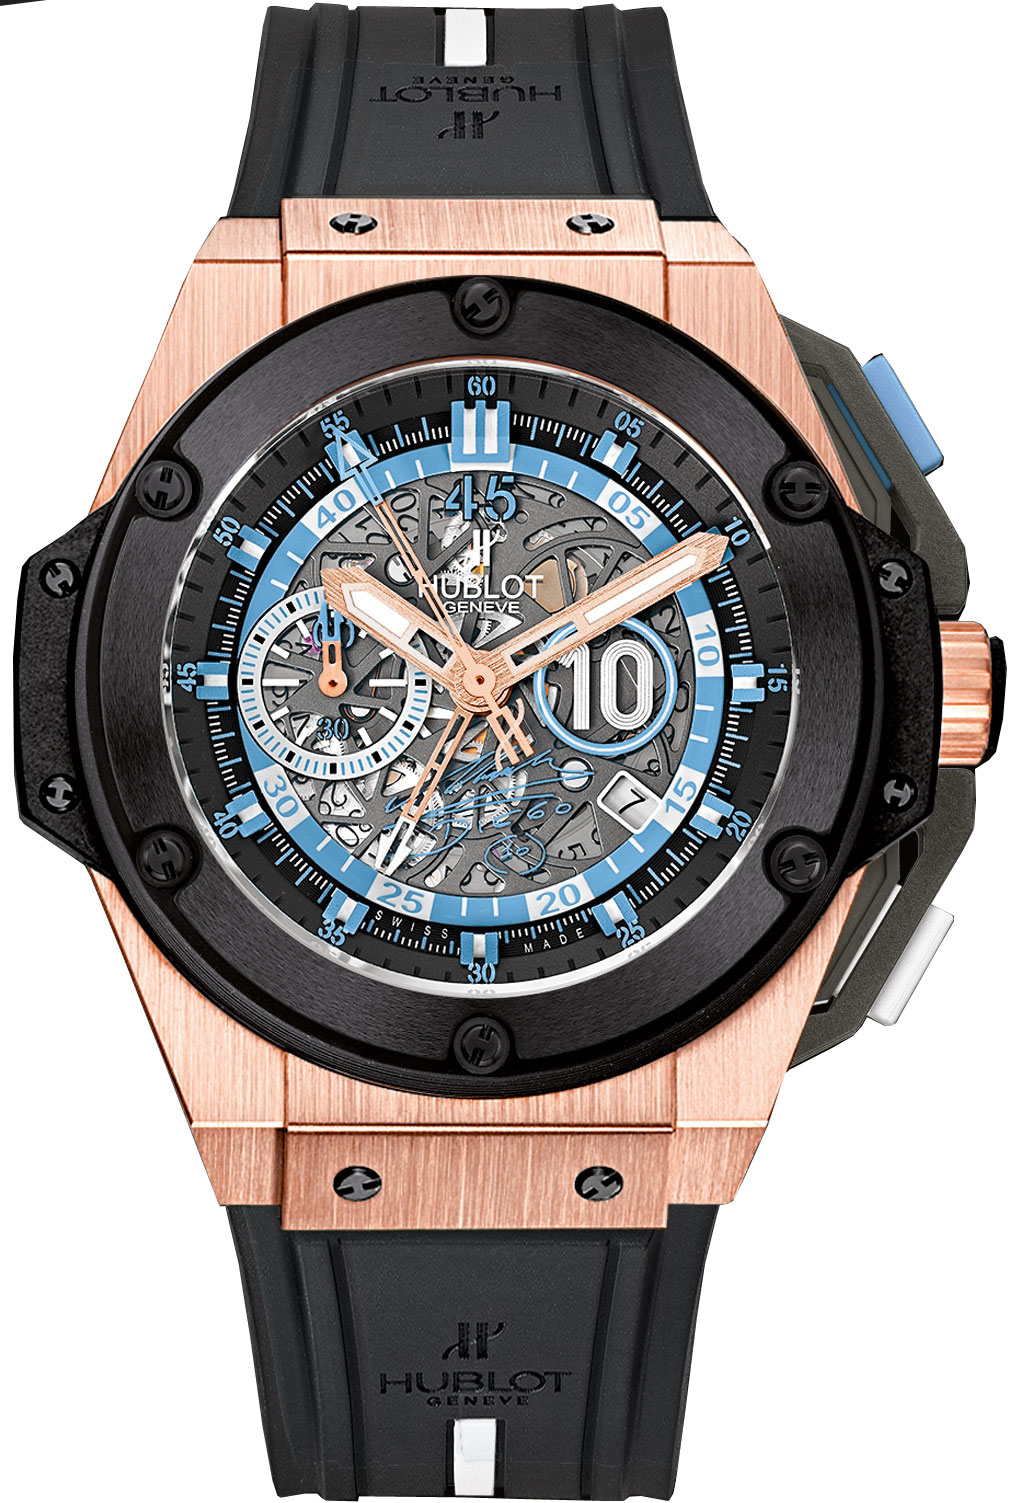 716.OM.1129.RX.DMA12 Hublot King Power Maradona Mens Watch - Click Image to Close